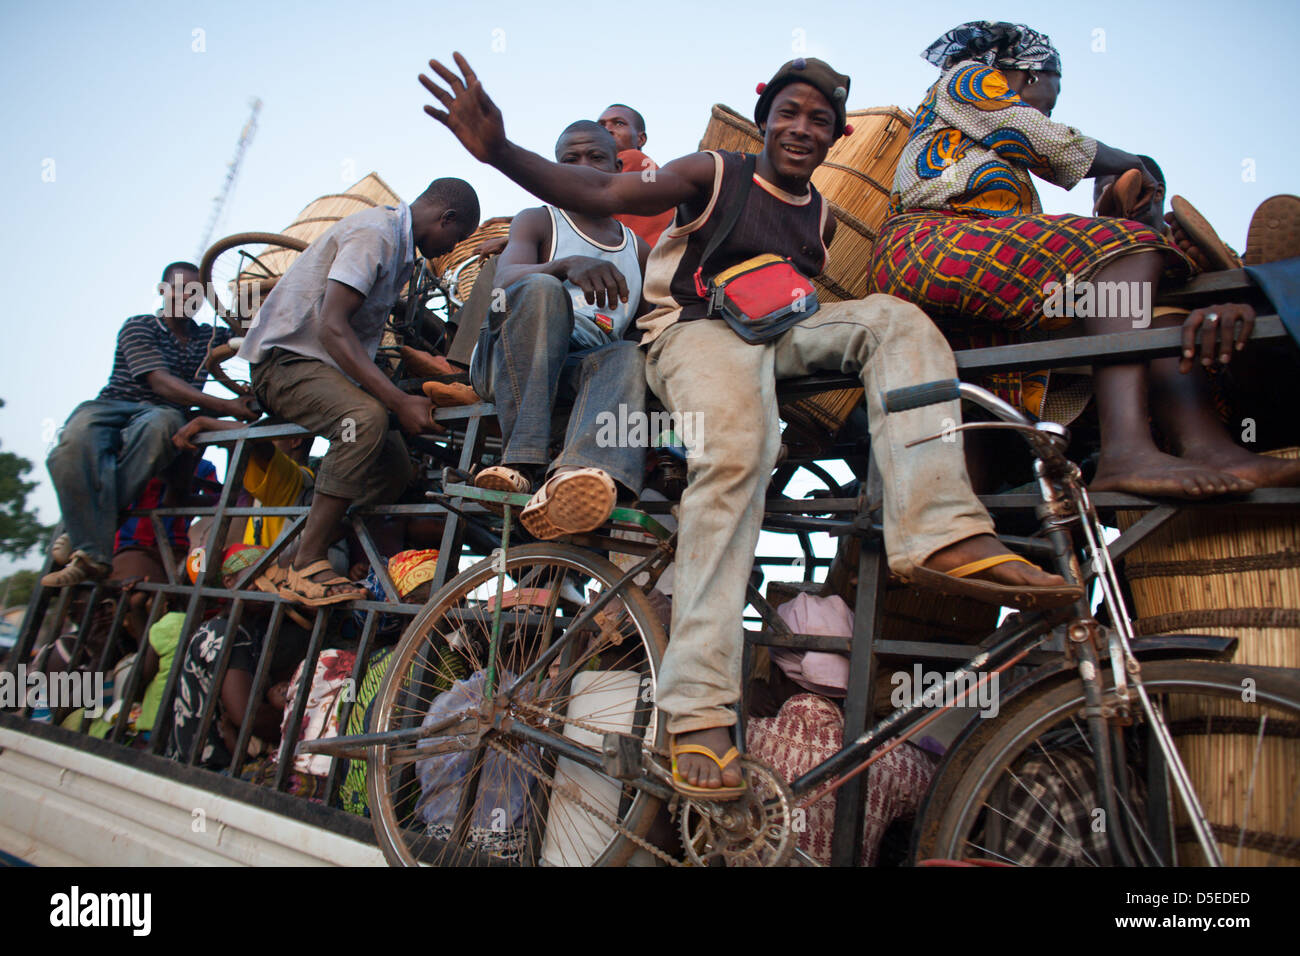 A bus loaded with people prepares to leave Nandom, in northern Ghana, for the journey south. - Stock Image